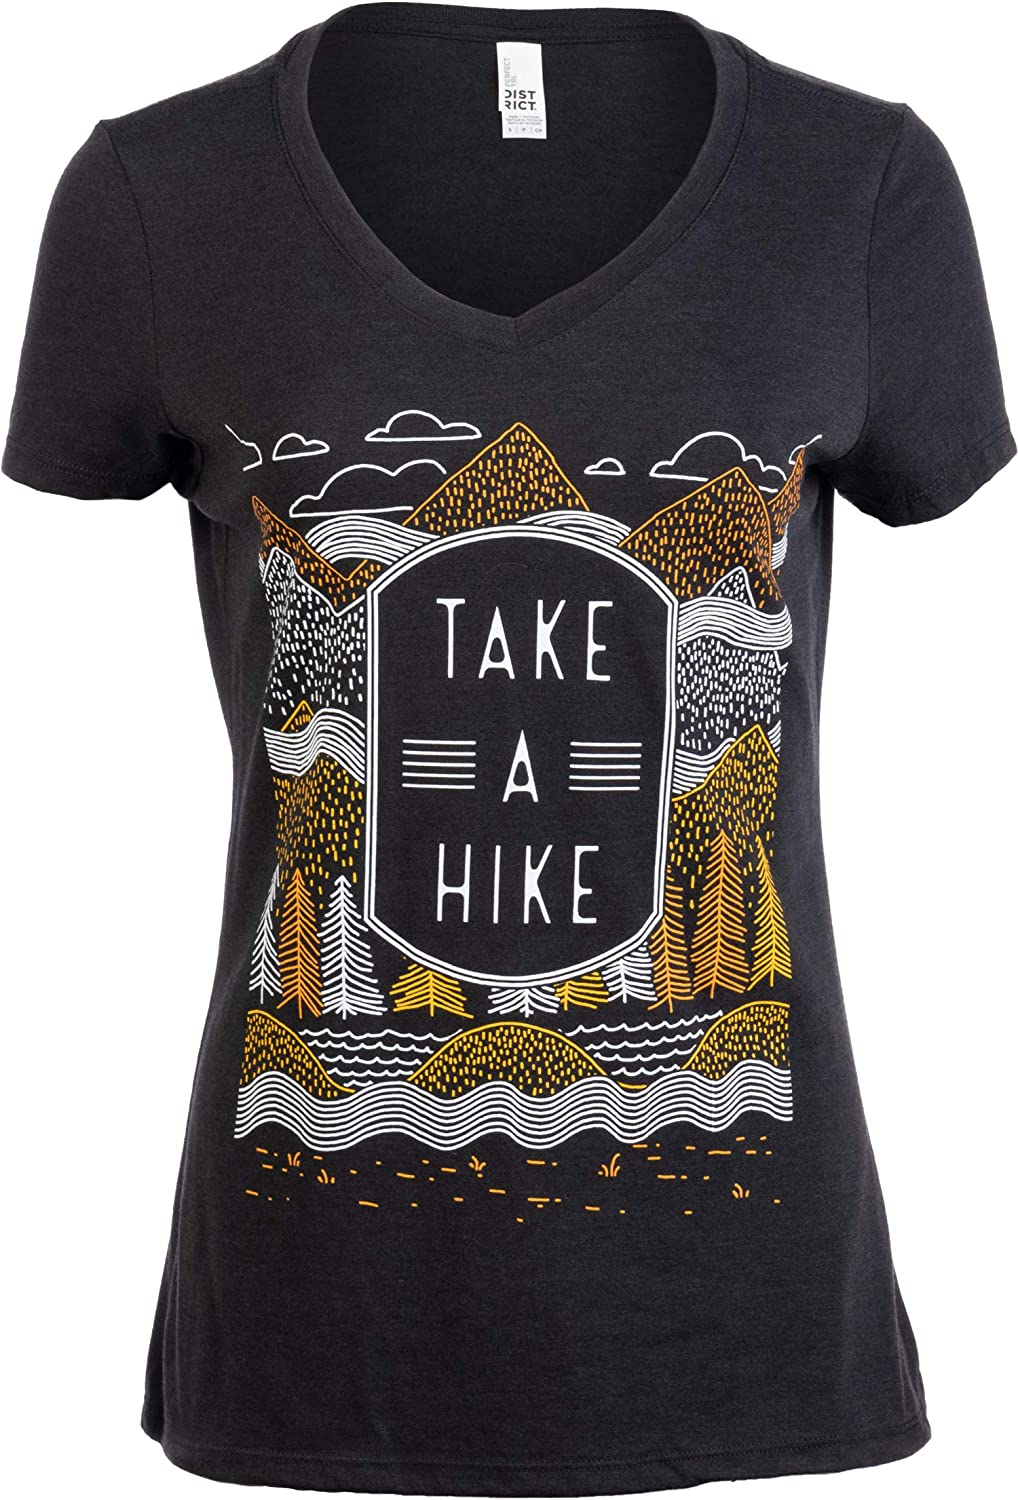 Take a Hike | Outdoor Nature Hiking Camping Graphic Saying for Women T-Shirt Top